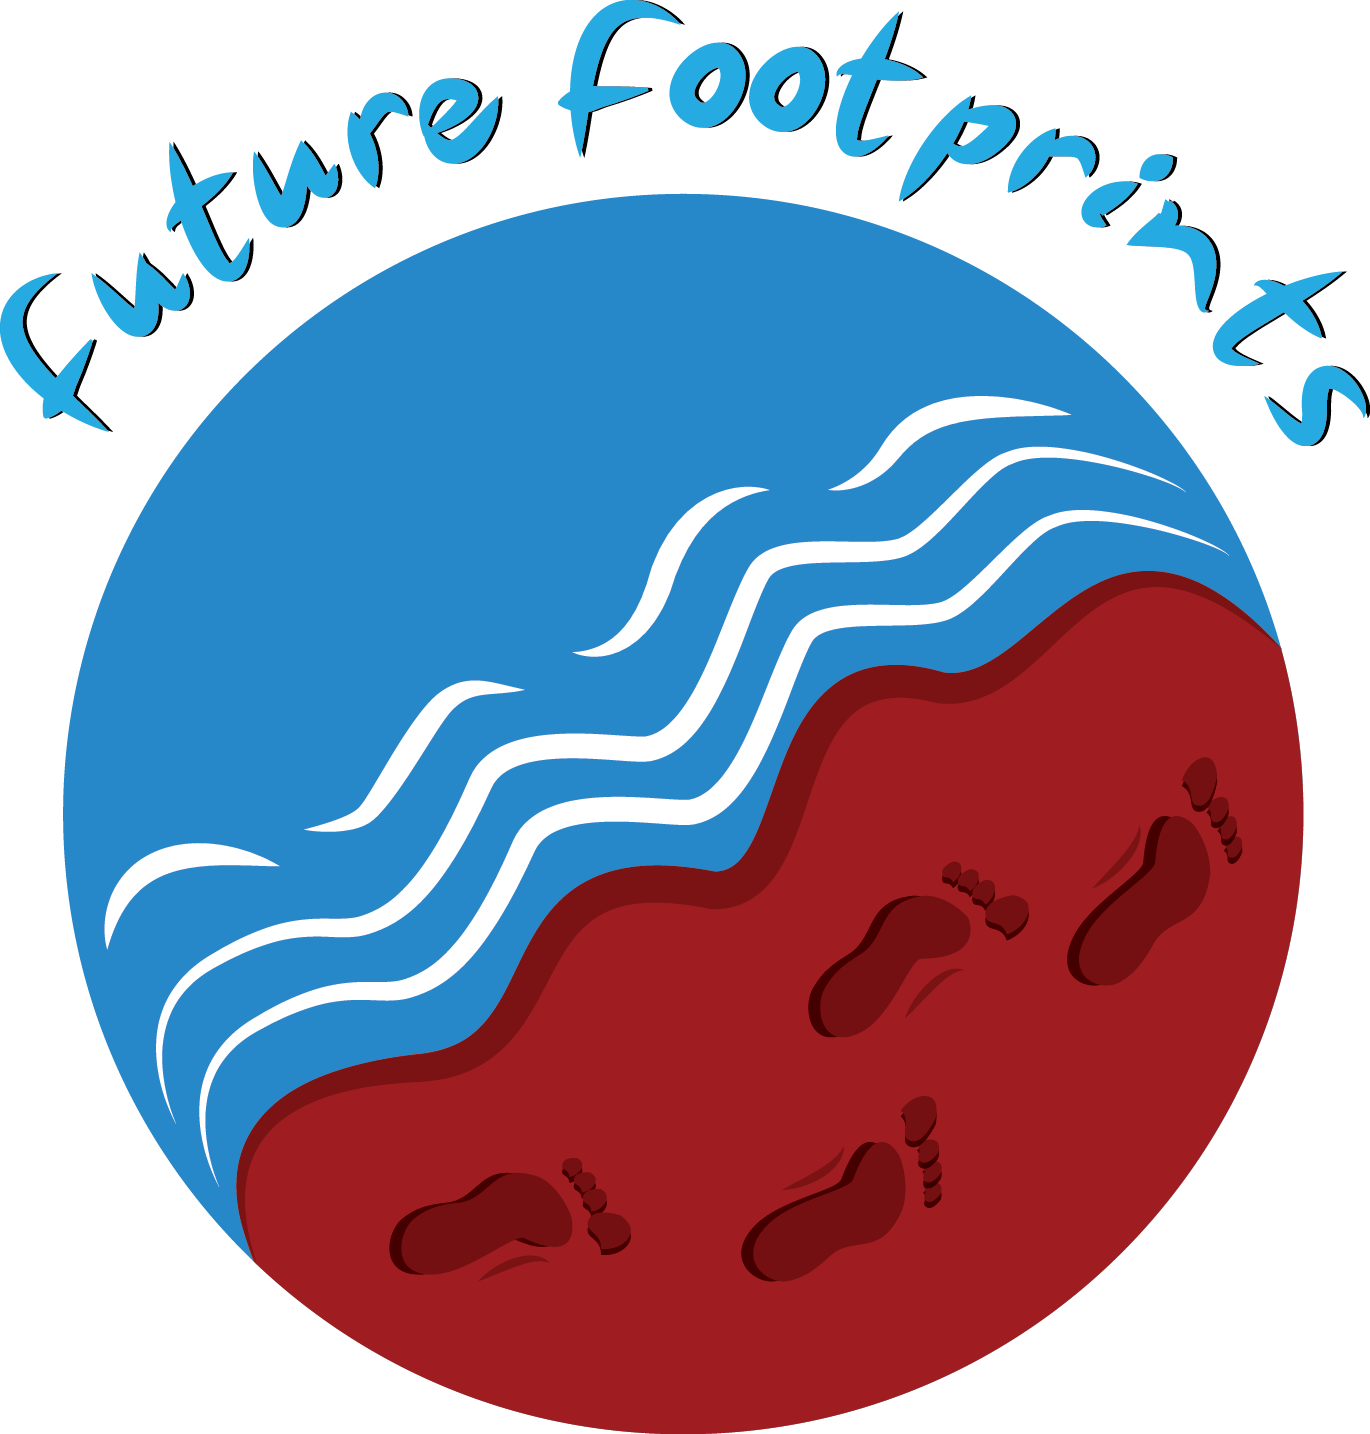 Future footprints program aiswa. Footsteps clipart pathway